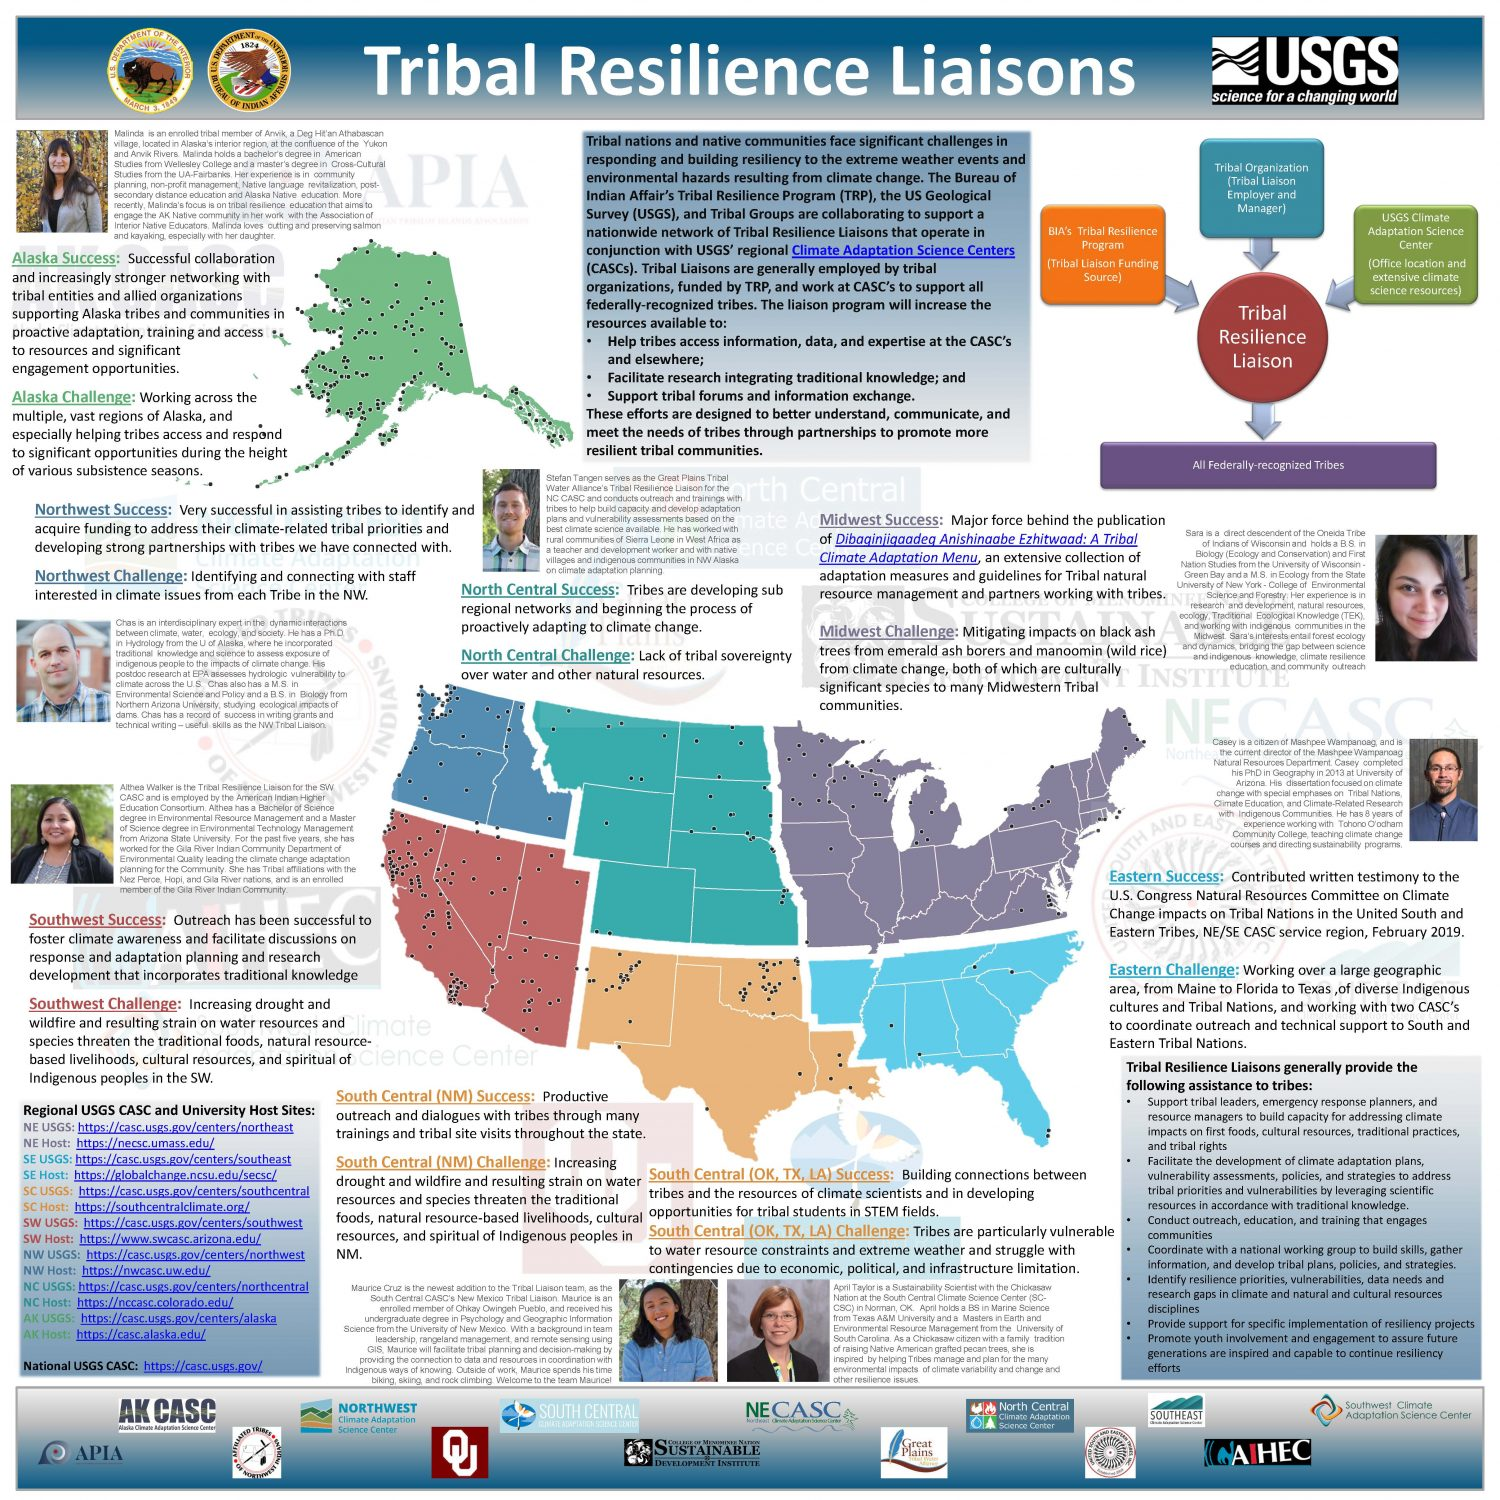 Image of Tribal Climate Liaison poster